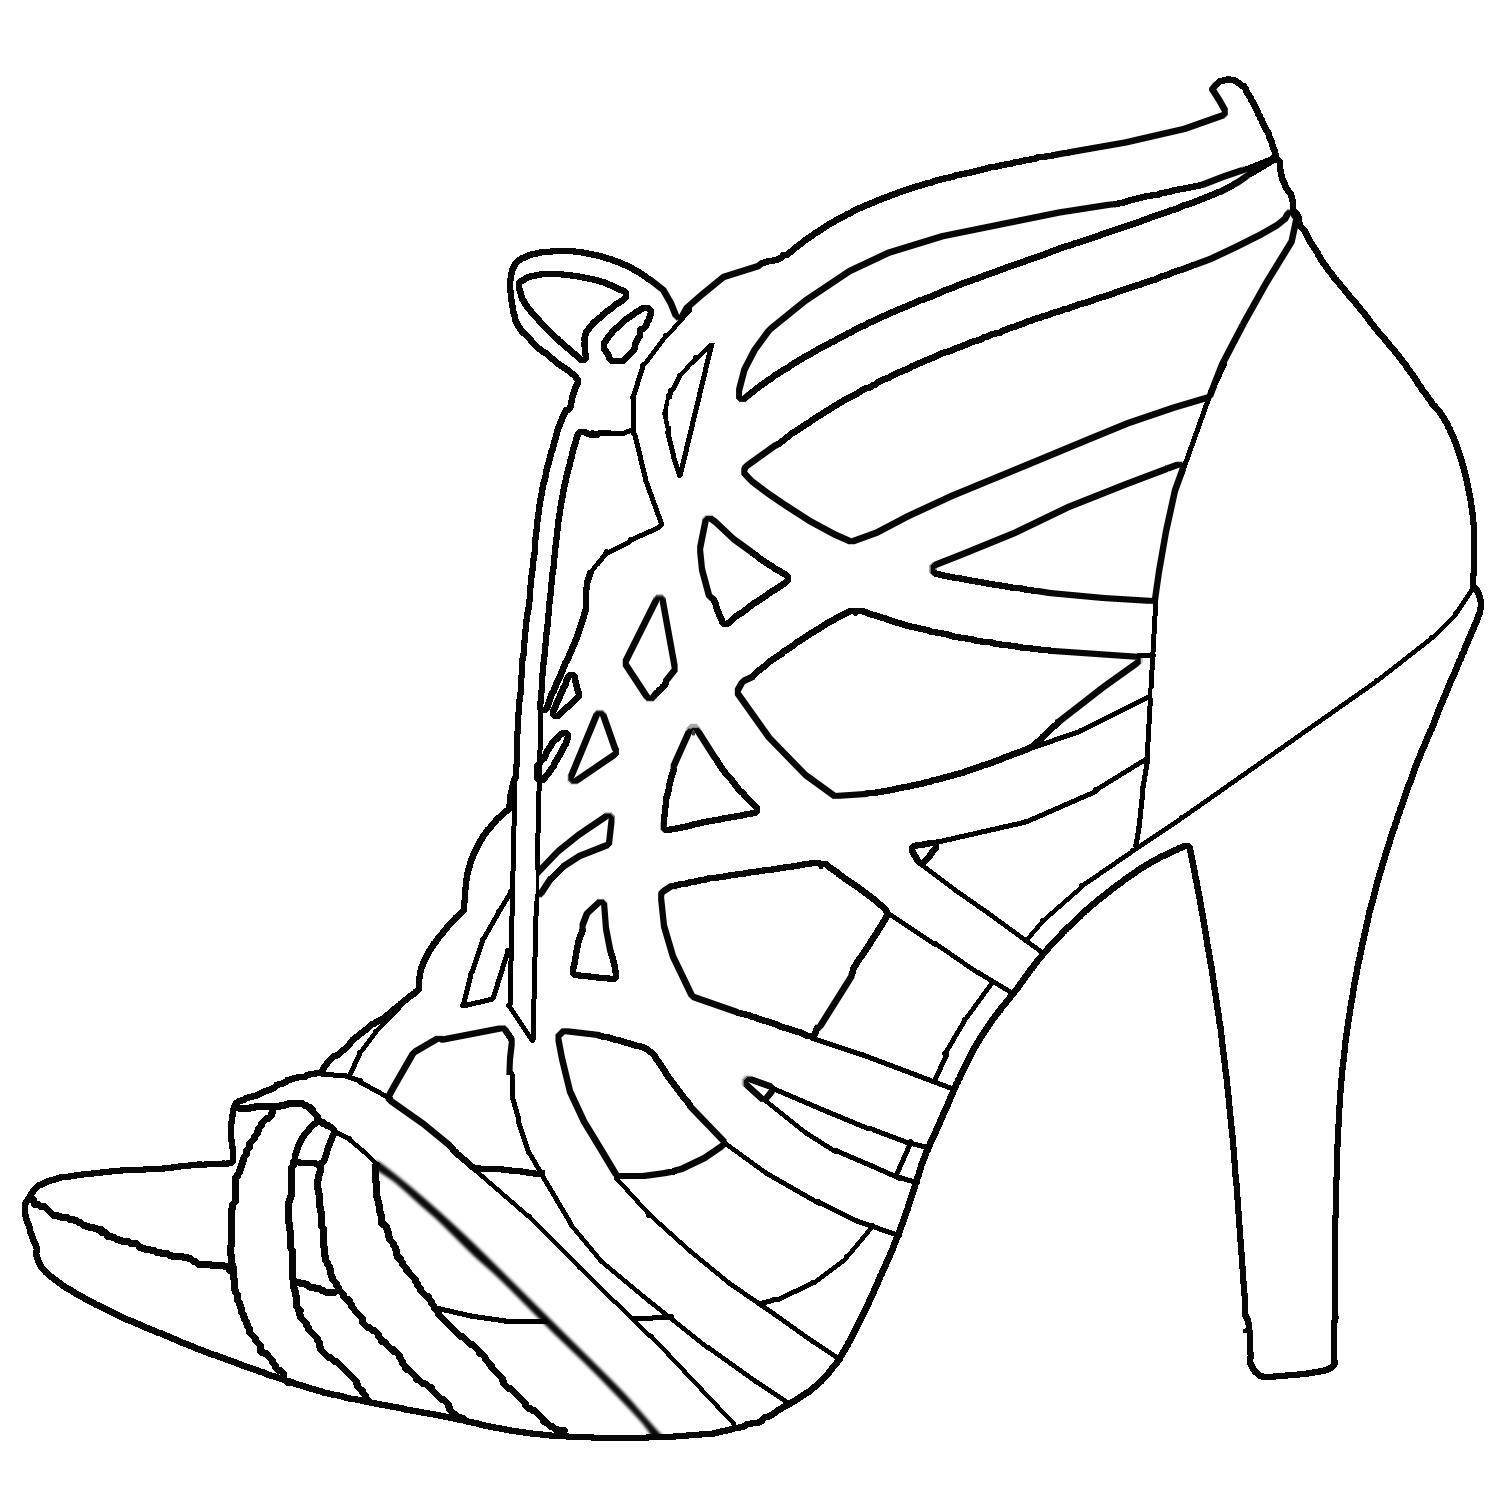 how to sketch high heels high heel shoes coloring pages bing images zb the shoe to sketch how high heels